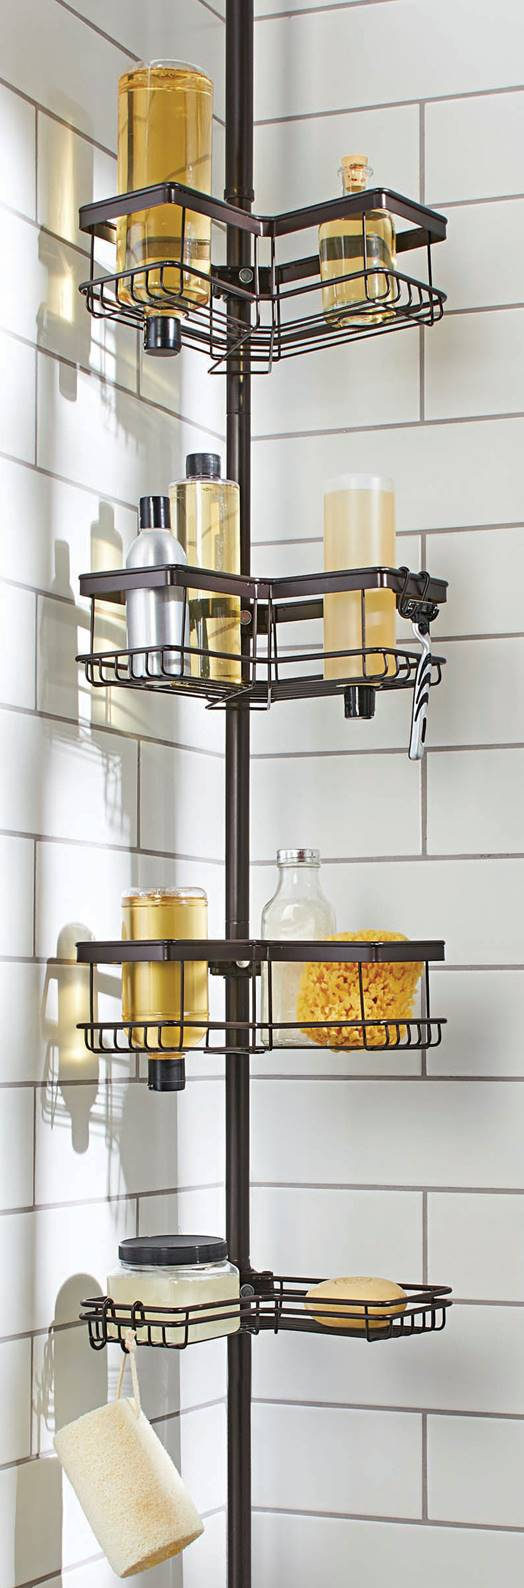 Better Homes & Gardens Contoured Tension Pole Shower Caddy, Oil-Rubbed Bronze by Supplier Generic